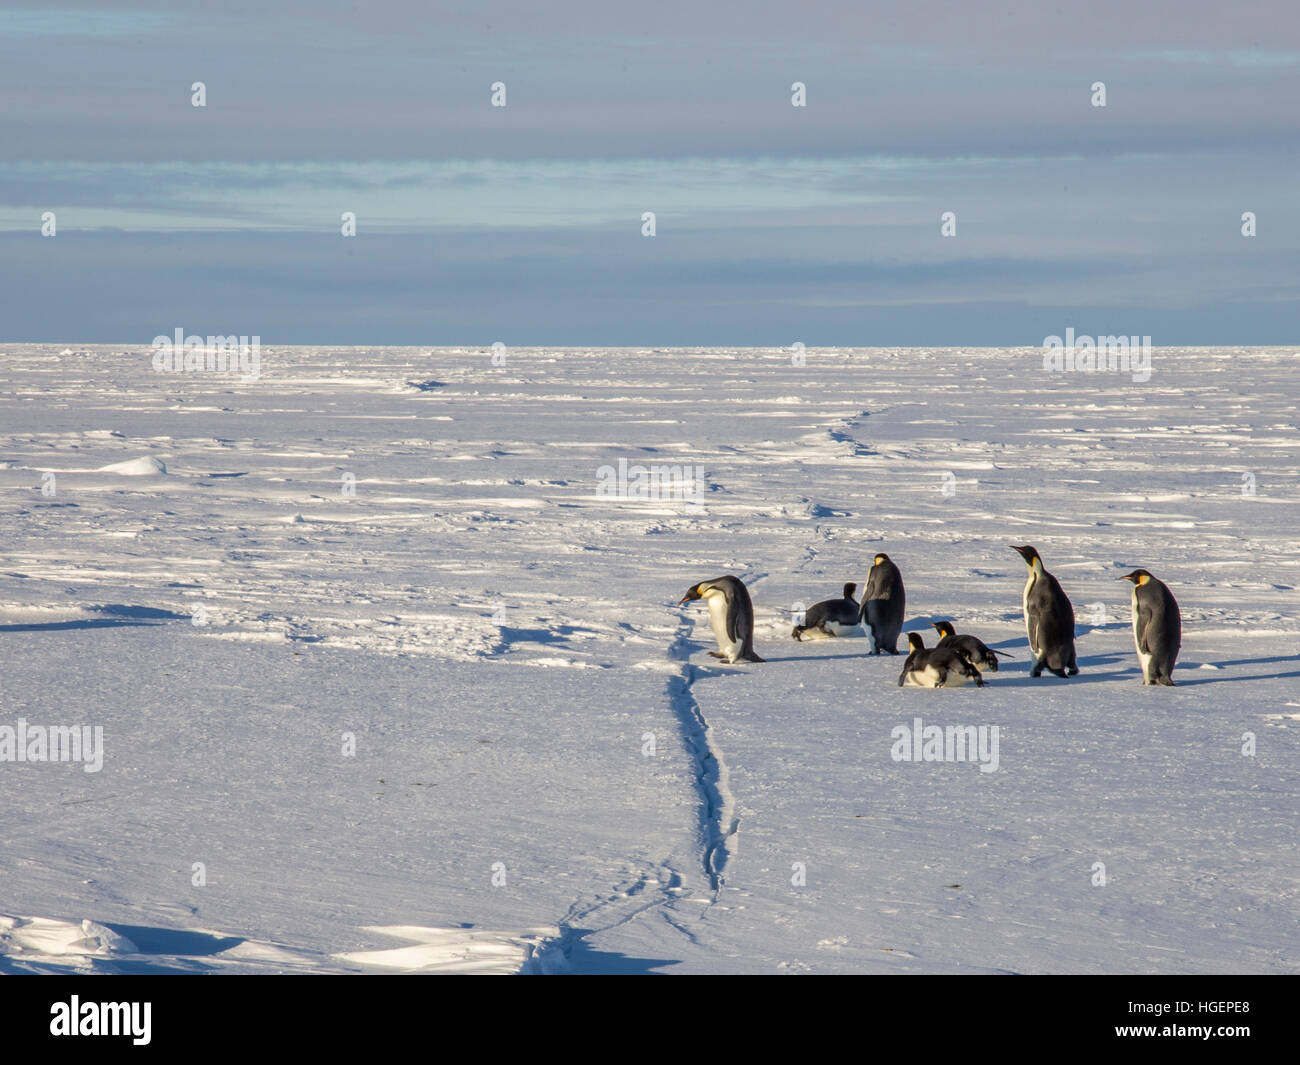 A crack appears in the frozen Weddell sea ice and is inspected by travelling adult penguins returning from the sea - Stock Image